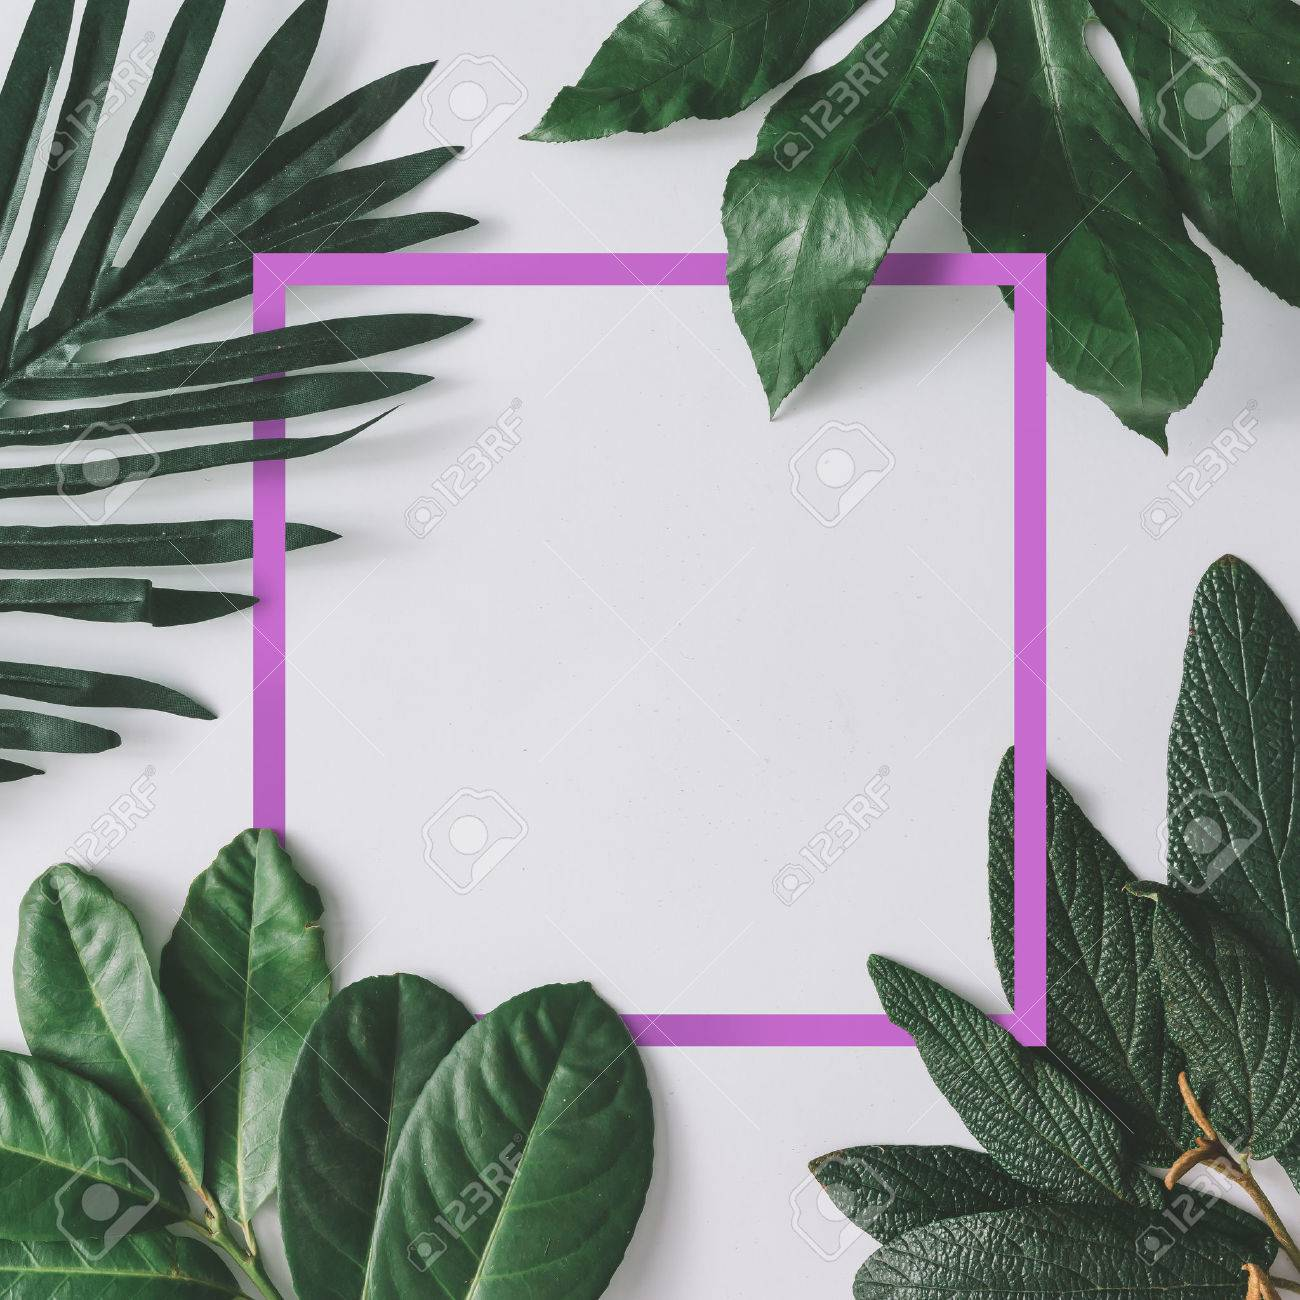 Creative minimal arrangement of leaves on bright white background with pink frame. Flat lay. Nature concept. - 74236973